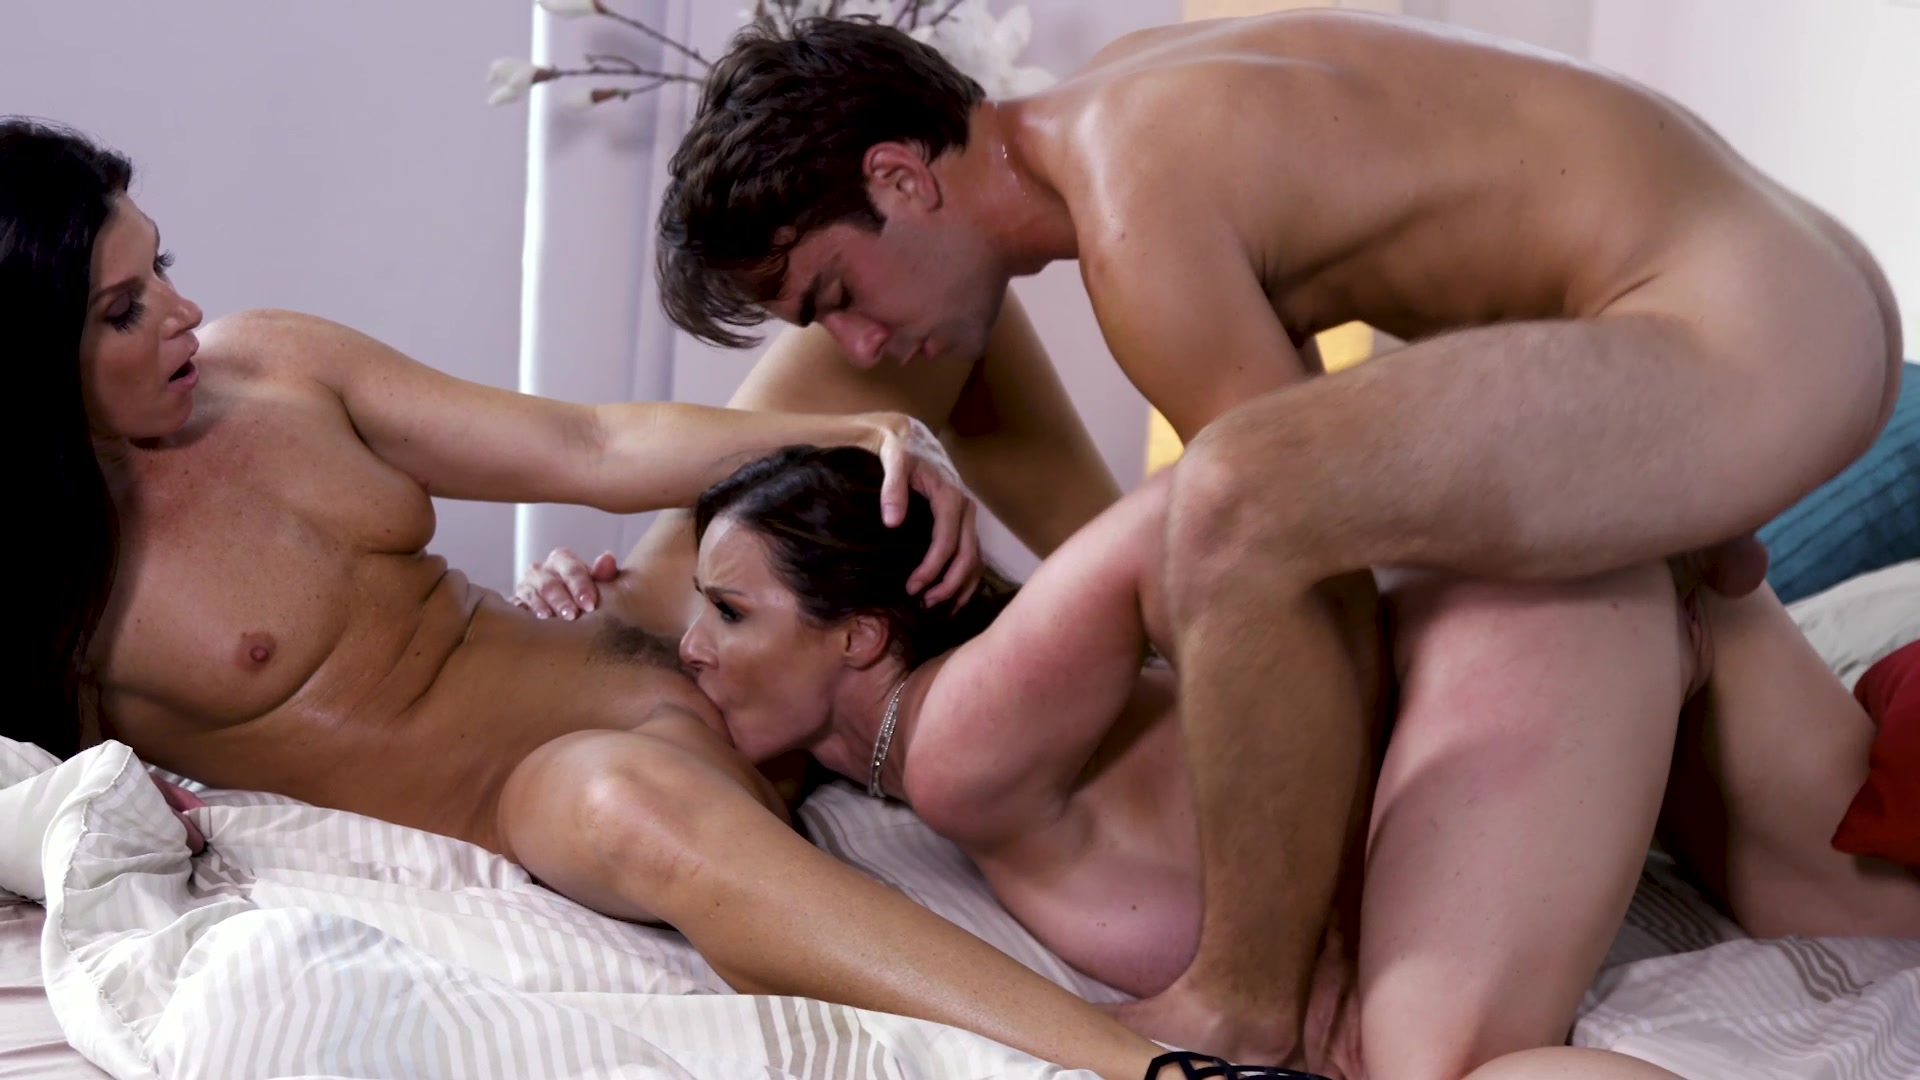 Kendra Lust and India Summer Have a Threesome with a Young Stud HD porn video scene.